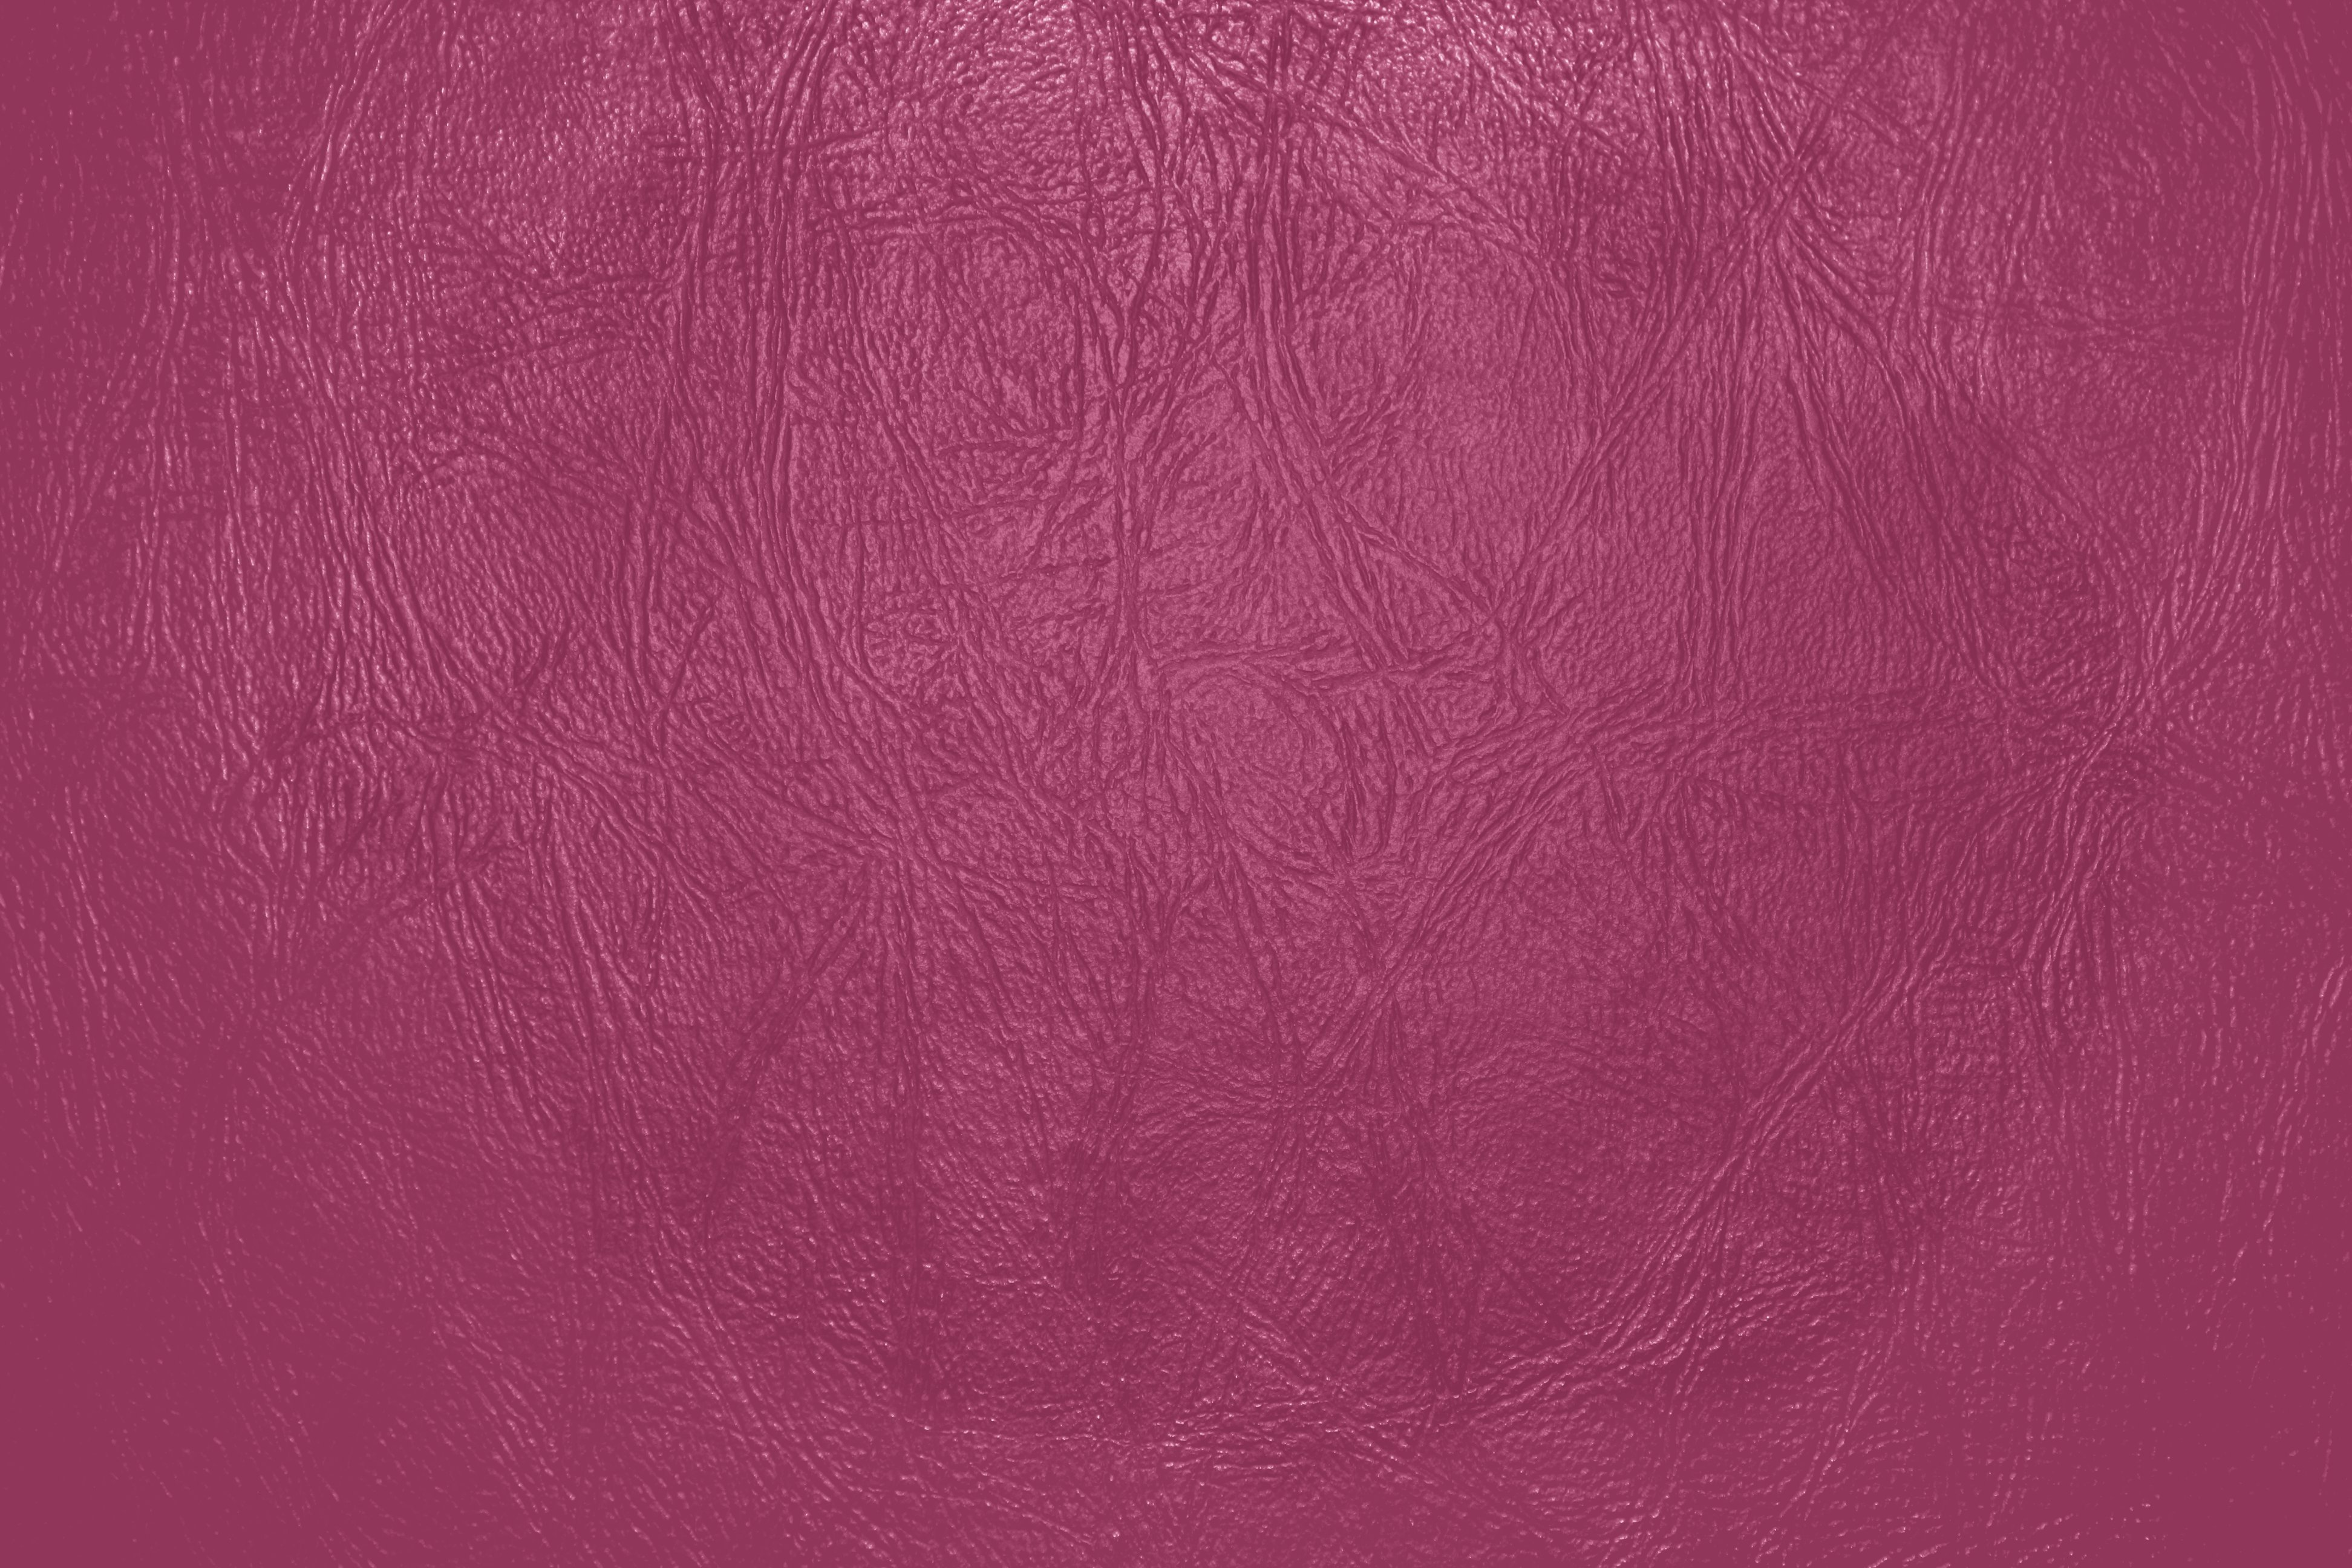 cherry-red-leather-close-up-texture